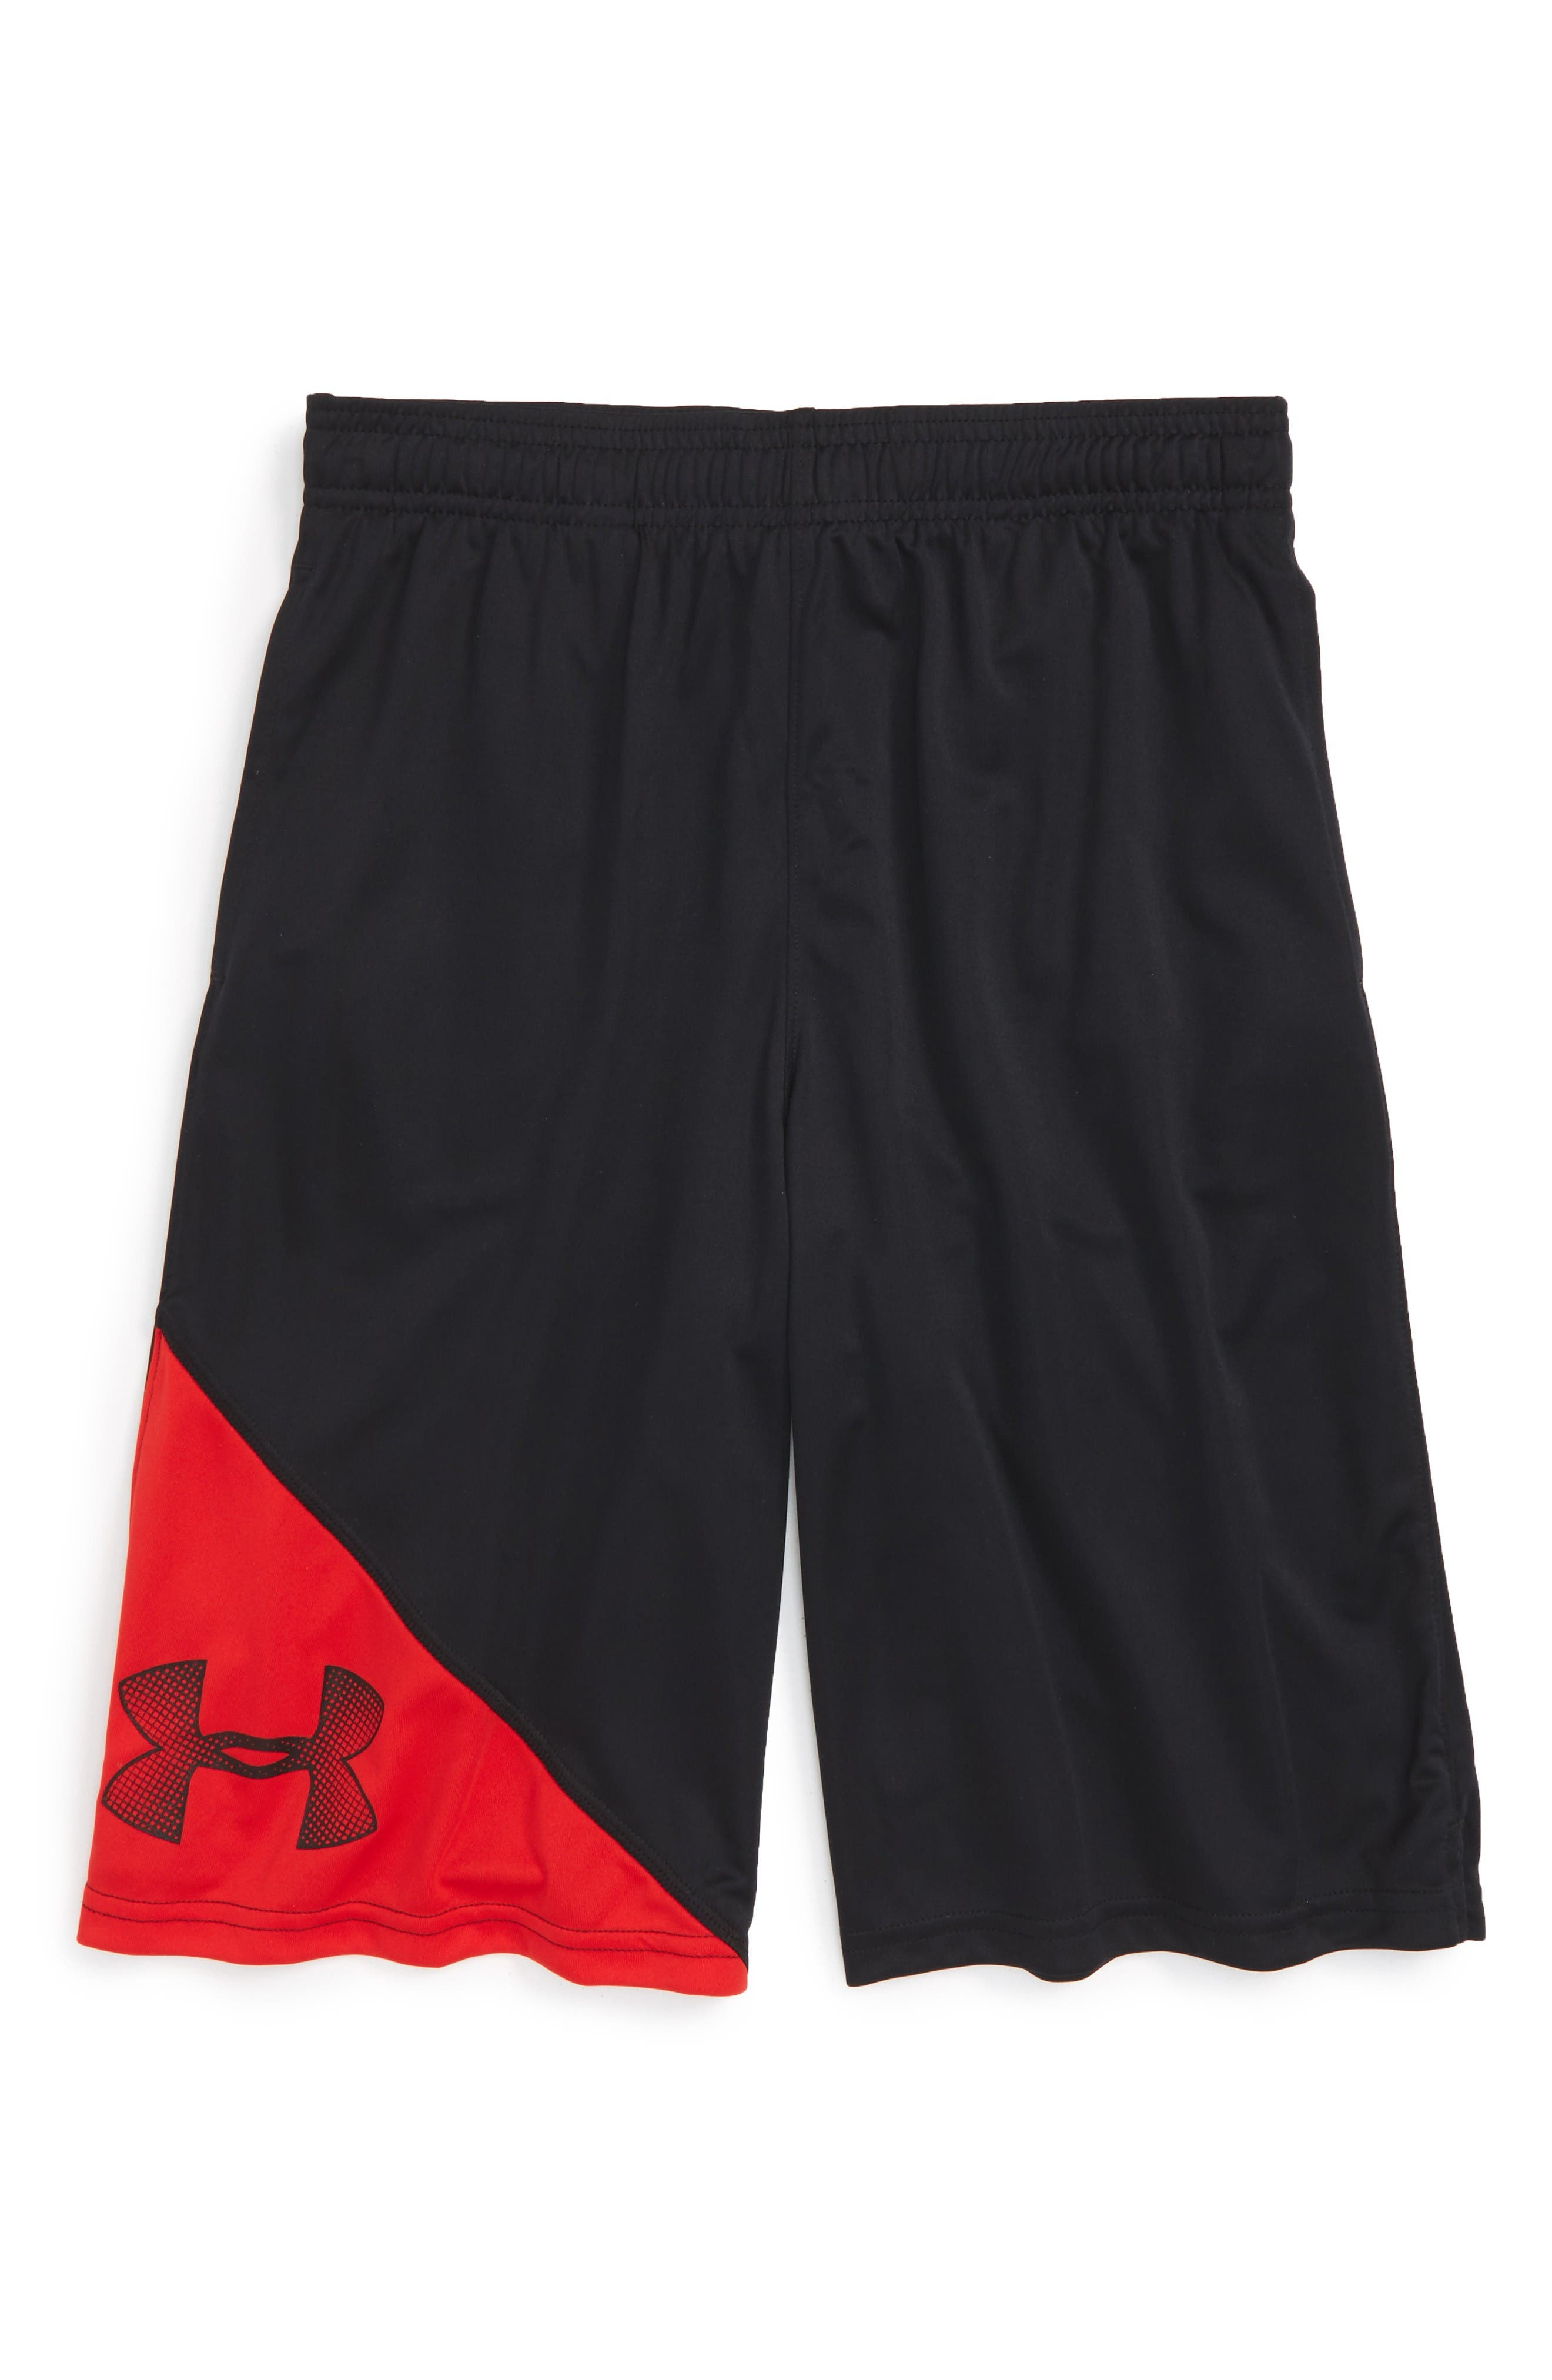 'Tech<sup>™</sup>' Athletic Shorts,                         Main,                         color, Black/ Red